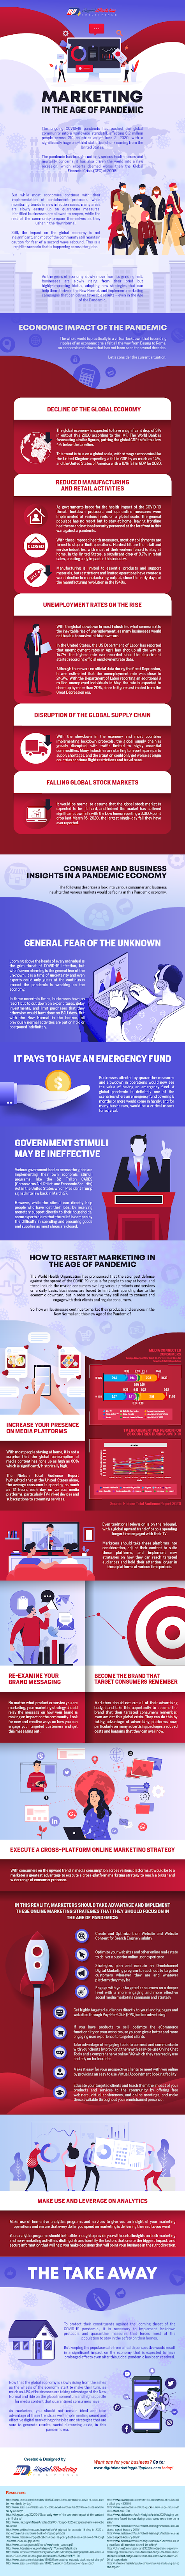 Marketing in the Age of Pandemic #infographic #Business #Marketing